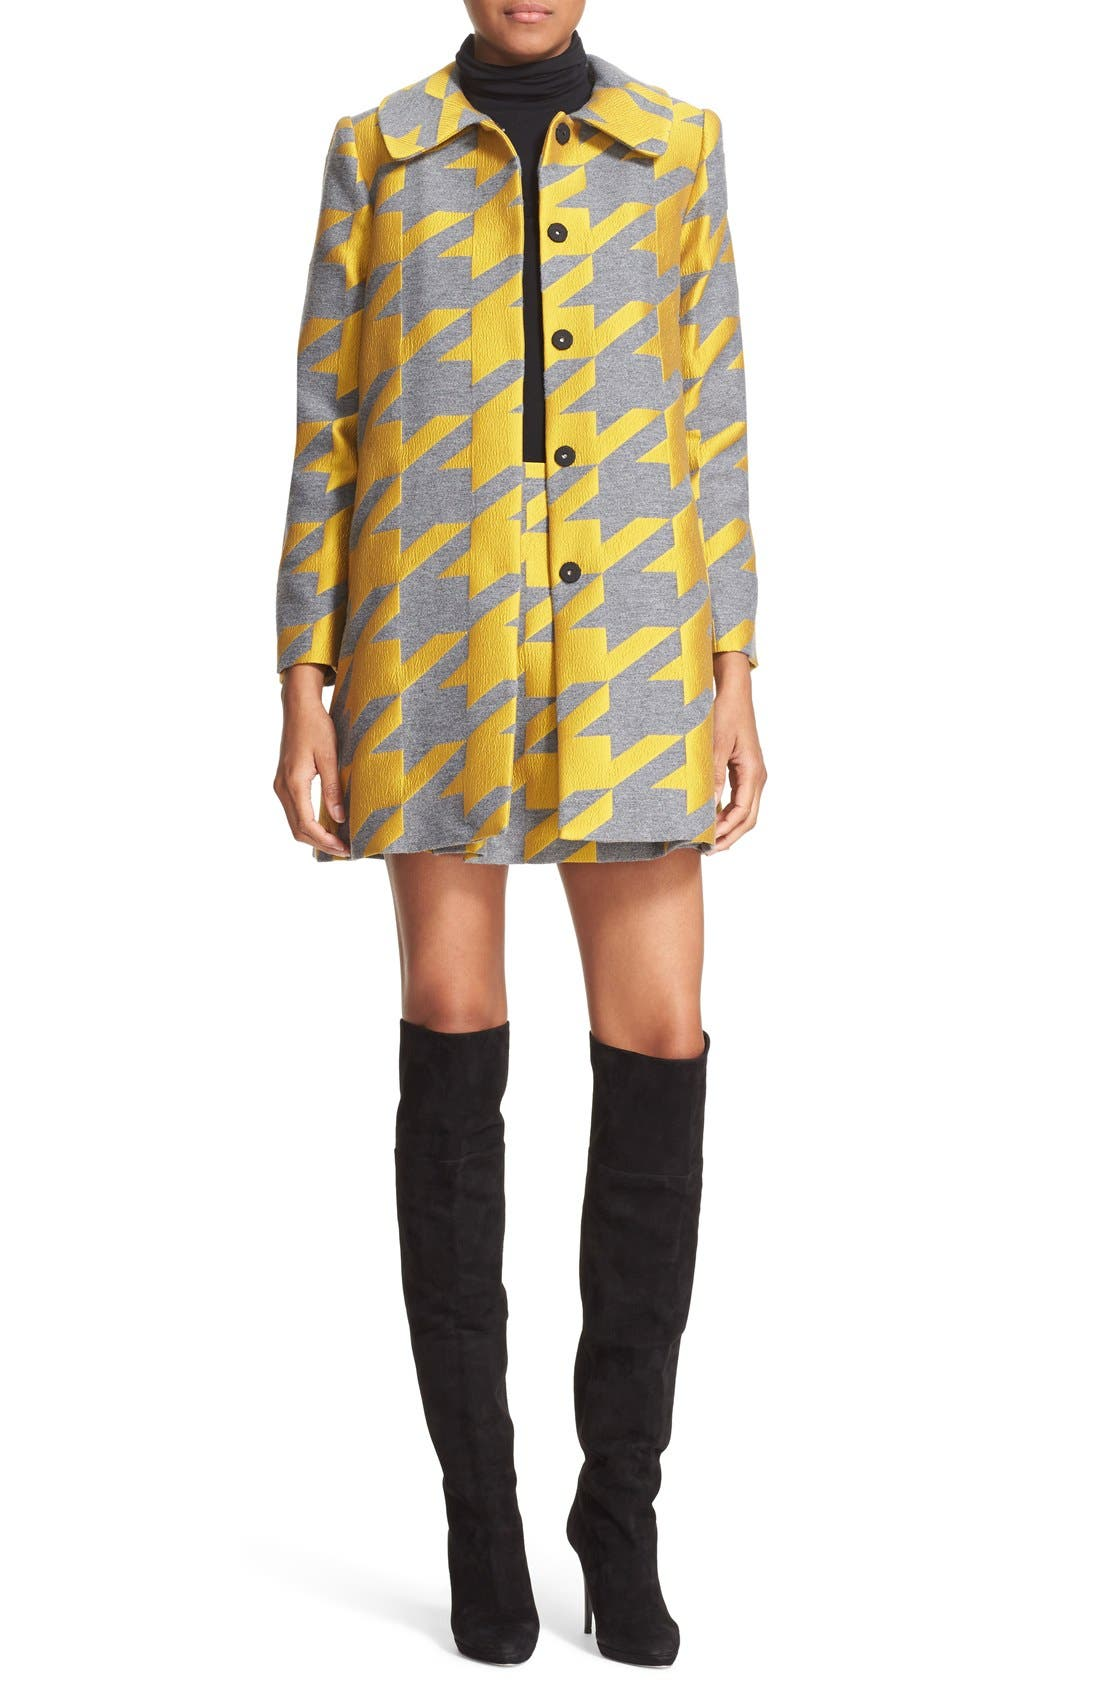 ALICE + OLIVIA,                             'Connor' Oversize Houndstooth Lampshade Skirt,                             Alternate thumbnail 3, color,                             700